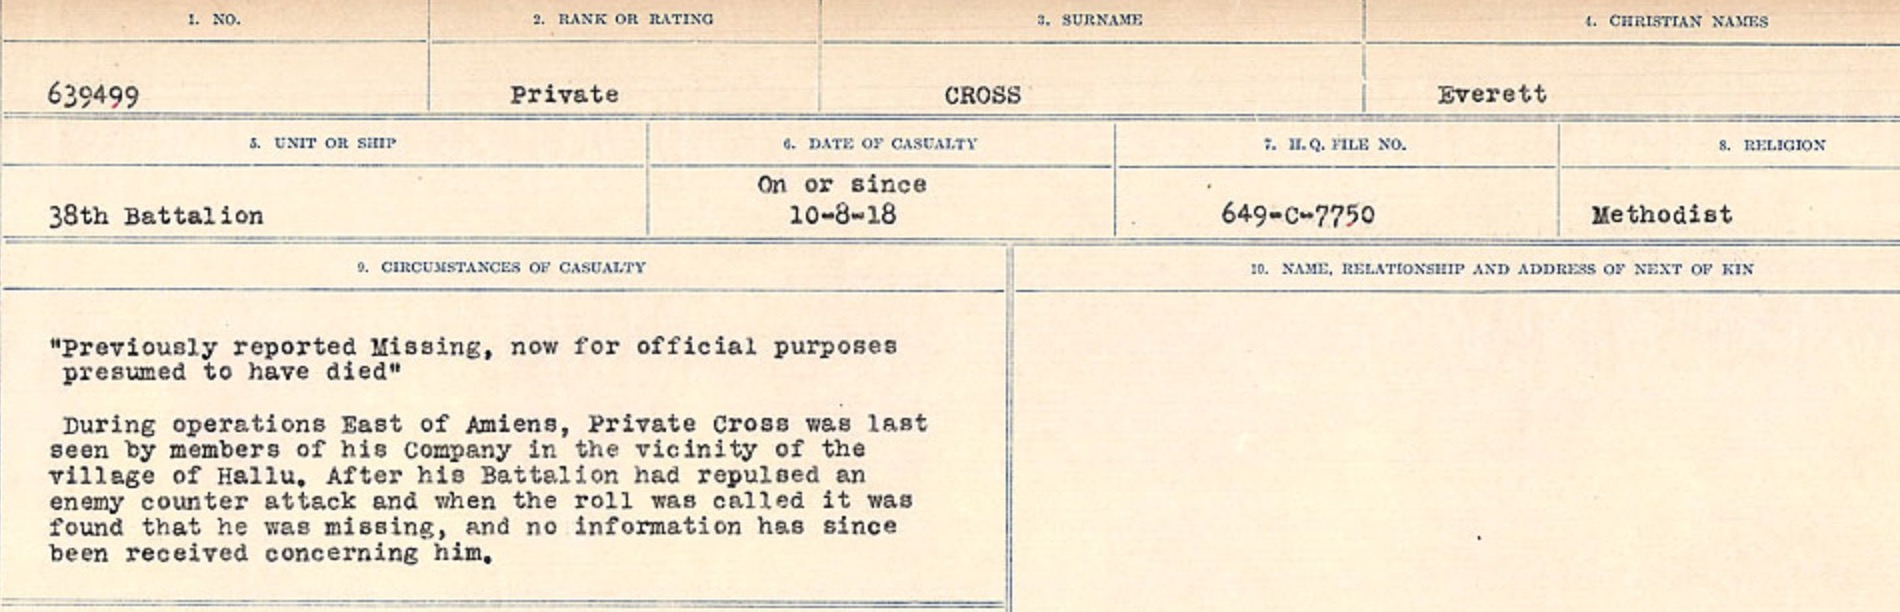 Circumstances of death registers– Source: Library and Archives Canada. CIRCUMSTANCES OF DEATH REGISTERS, FIRST WORLD WAR Surnames: CRABB TO CROSSLAND Microform Sequence 24; Volume Number 31829_B016733. Reference RG150, 1992-93/314, 168. Page 757 of 788.